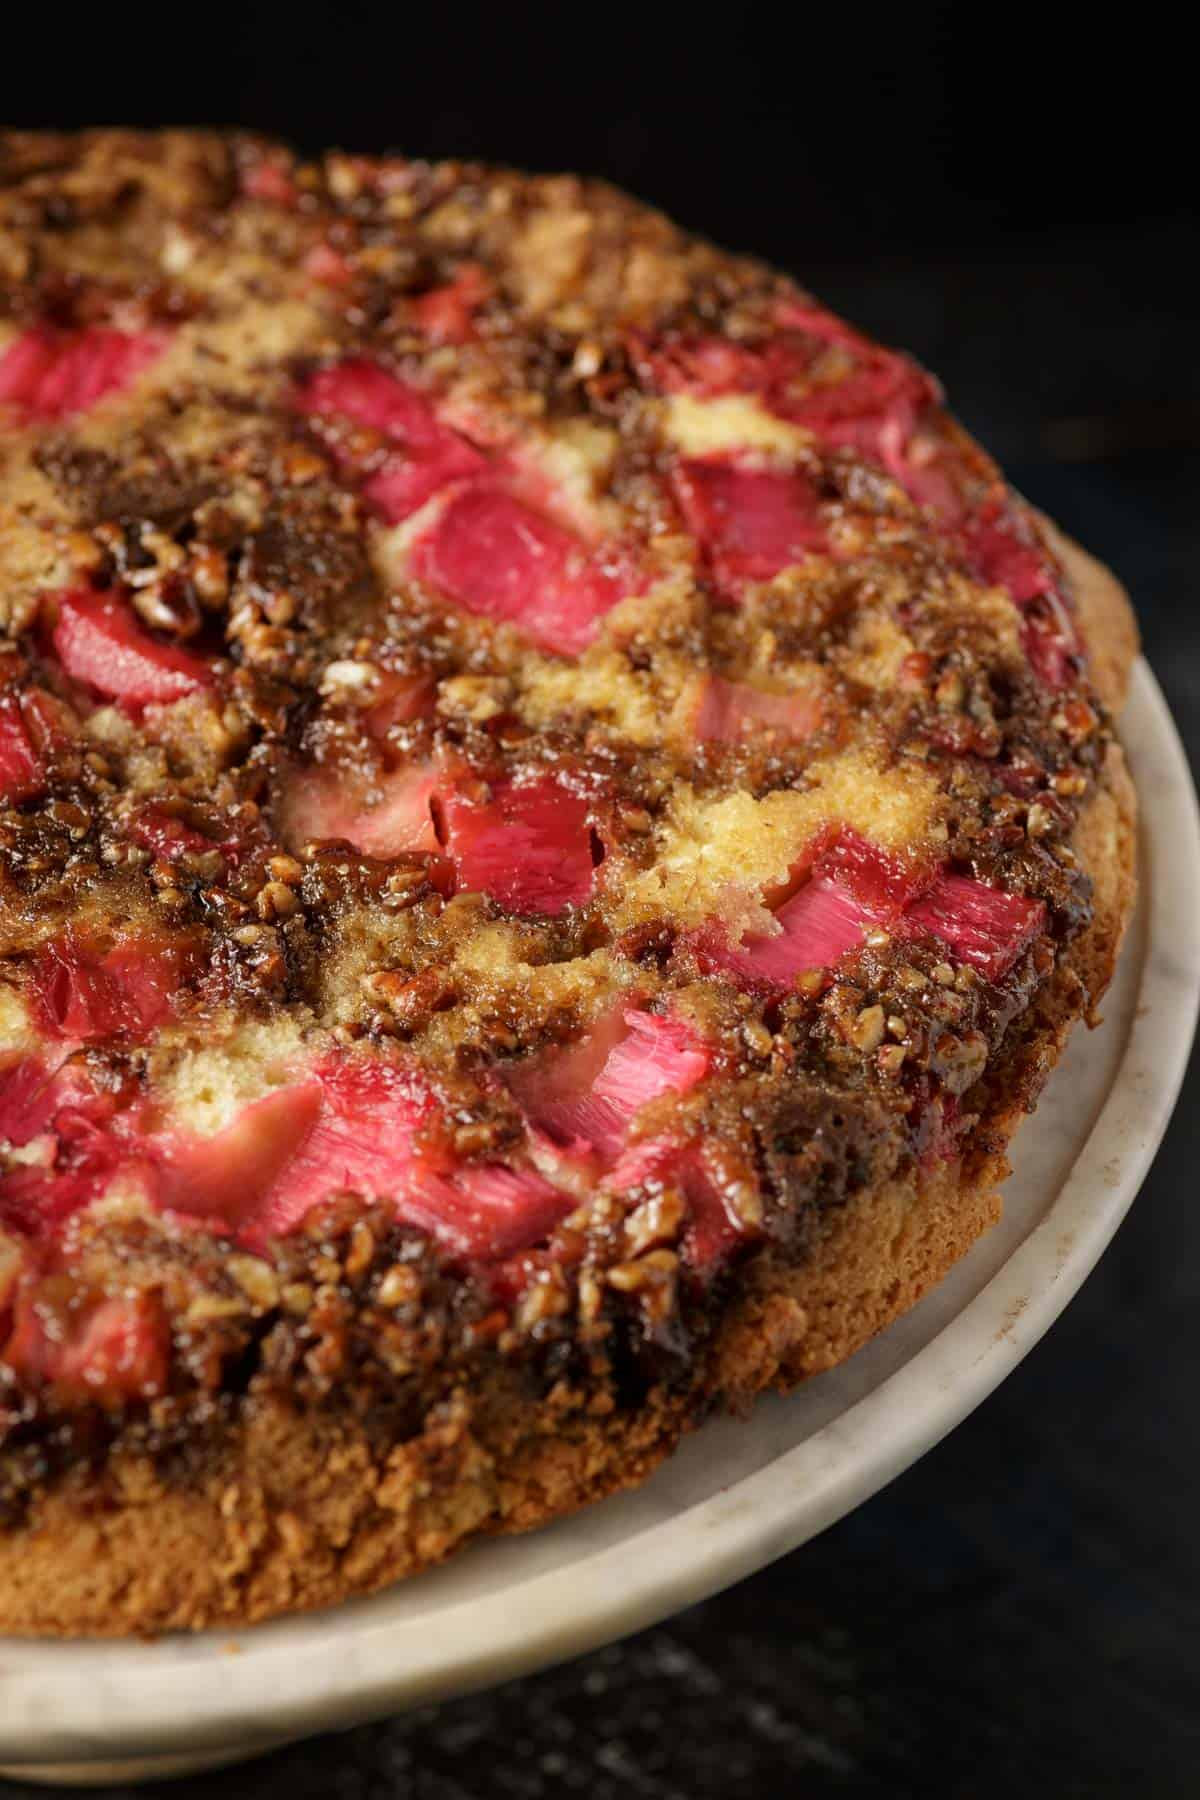 A rhubarb cake after it has been flipped onto a serving paltter